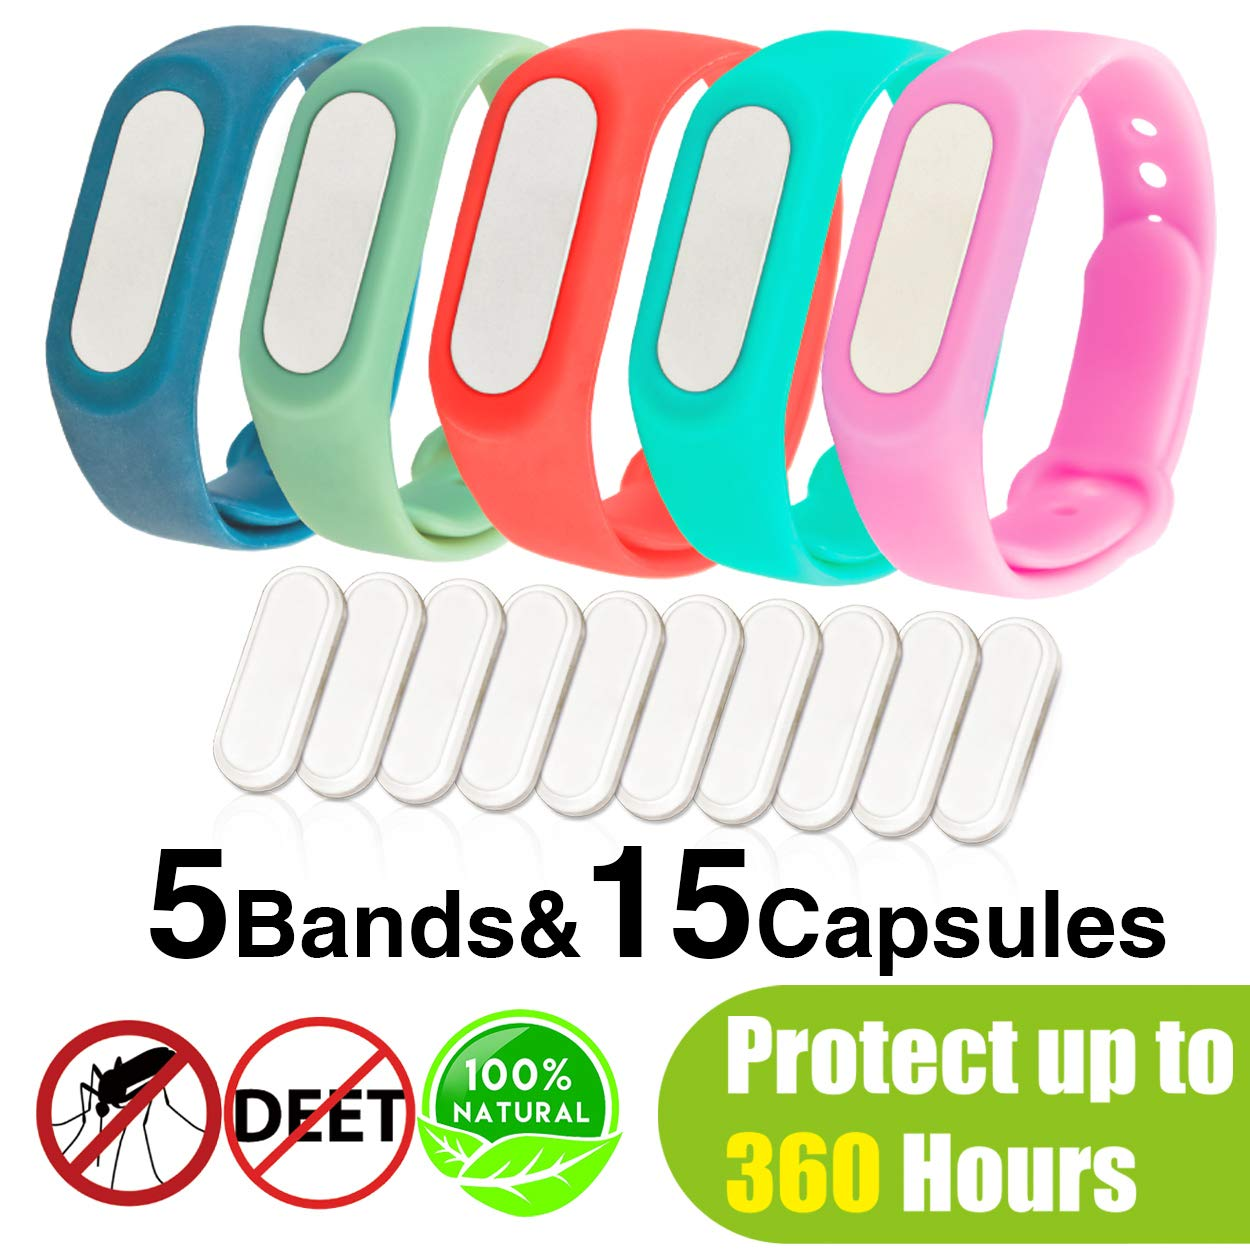 5pcs Mosquito Repellent Bands, Deet-free and Natural Insect Repellent Bracelet, Reusable Waterproof Silicone Wristbands for Children & Adults (15 Capsules)